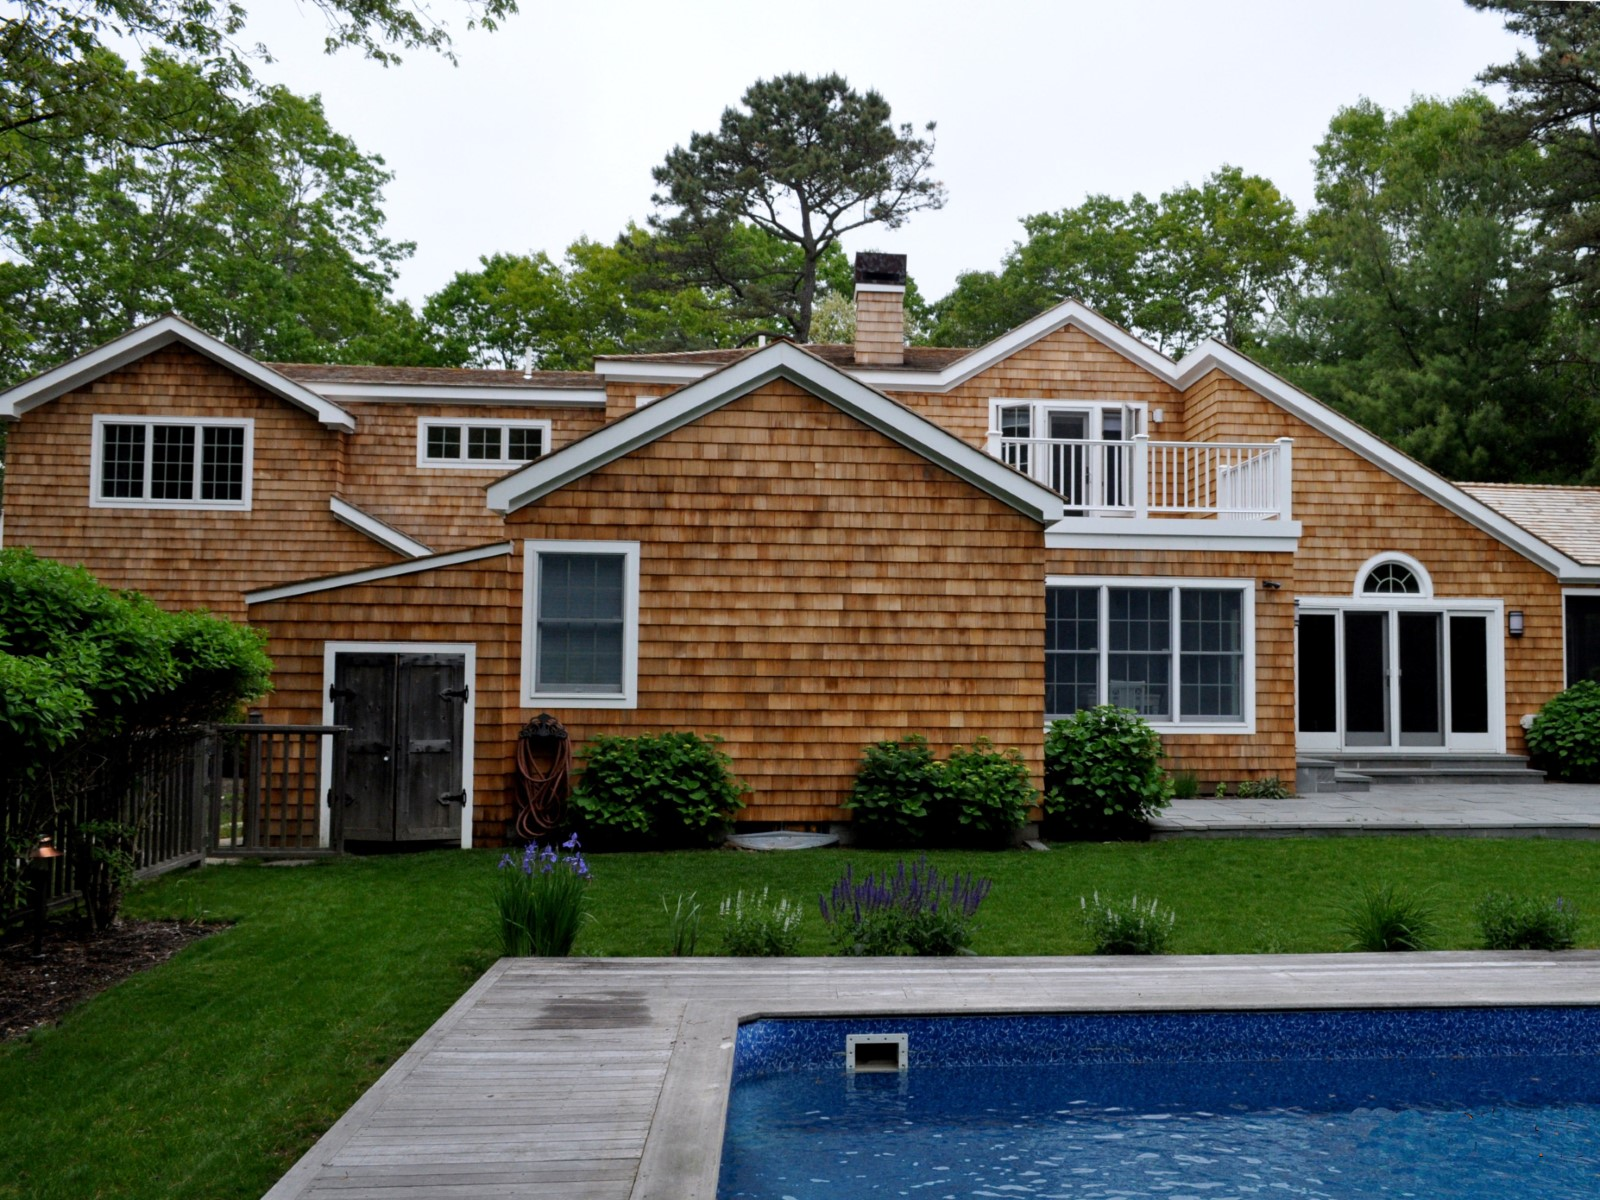 Single Family Home for Rent at RENOVATED EAST HAMPTON HOME WITH POOL 16 Cedar Trail East Hampton, New York 11937 United States